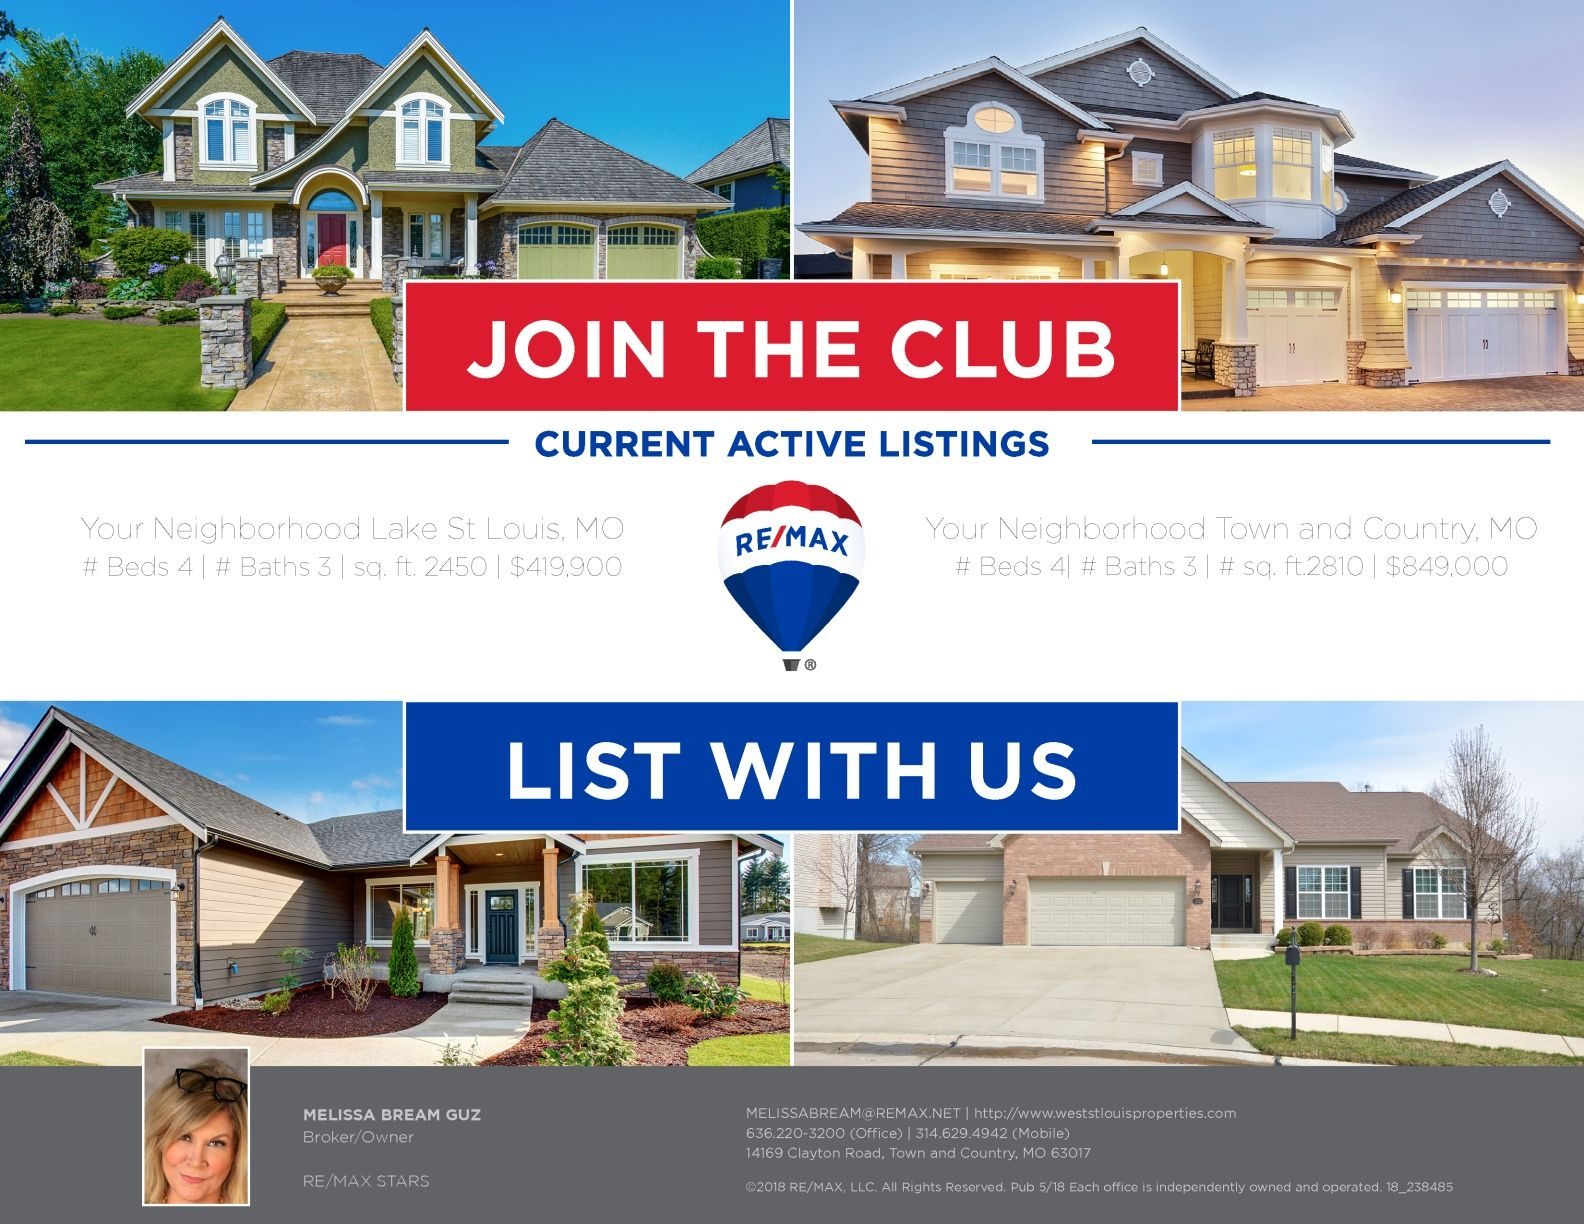 Listings Wanted The Neighbourhood Town And Country House Styles